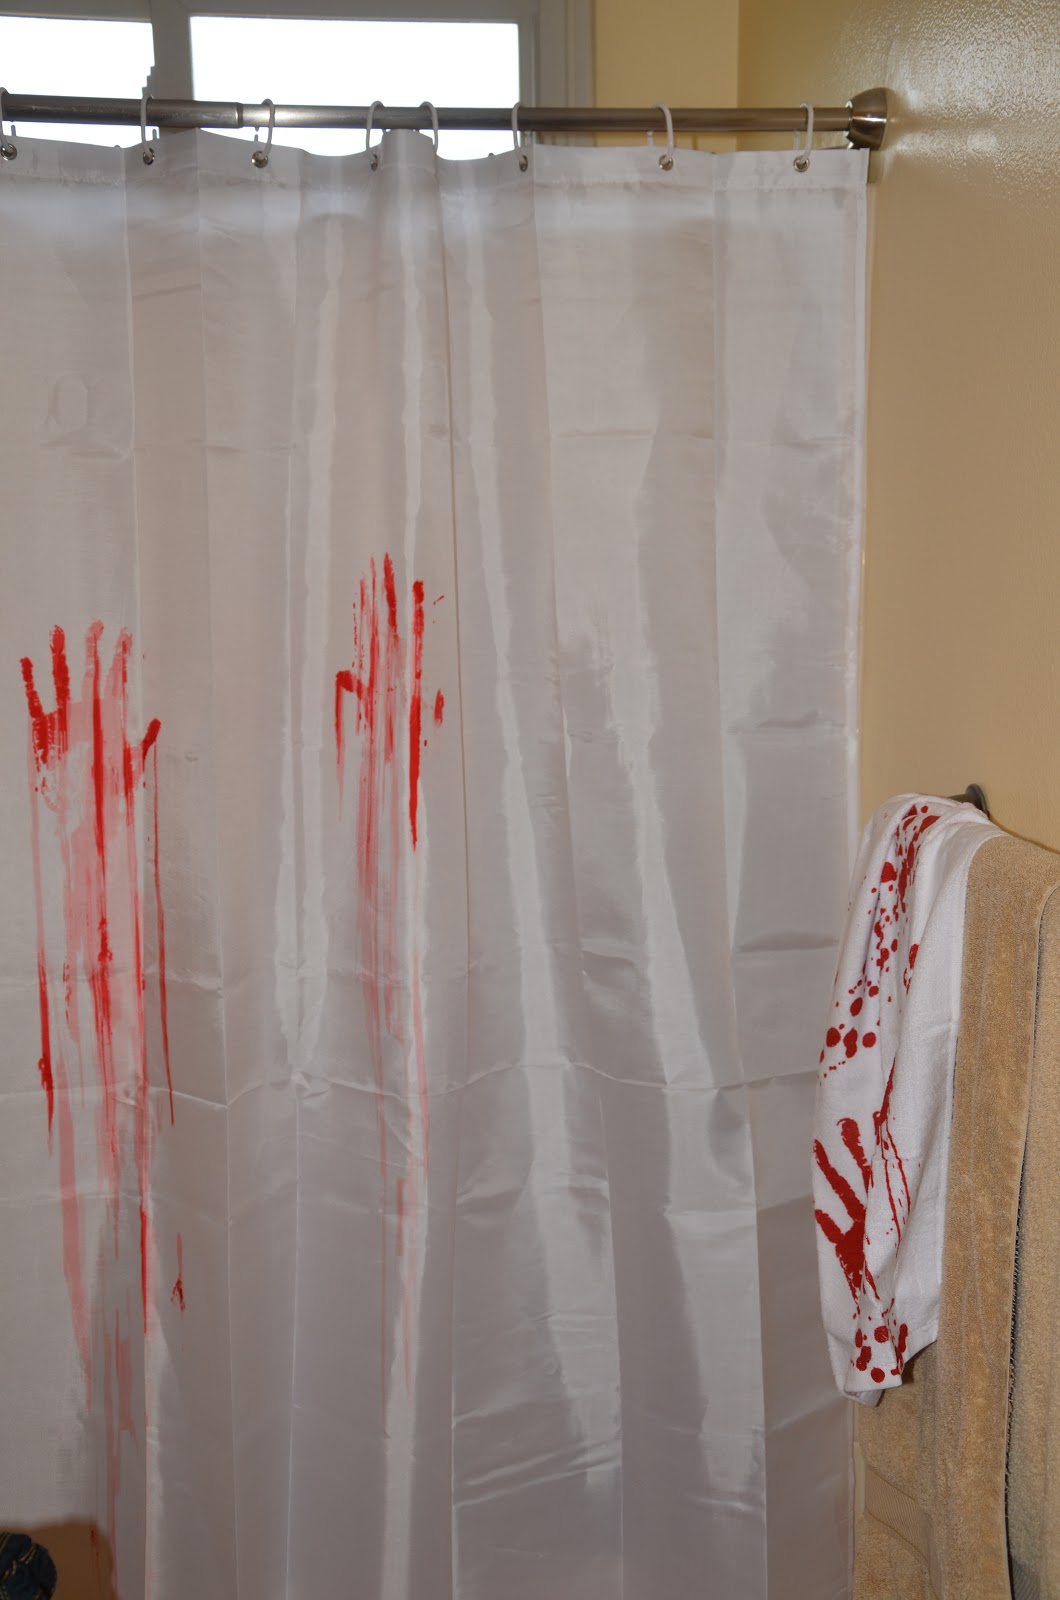 Hobo ninja review and give away for Psycho shower curtain and bath mat